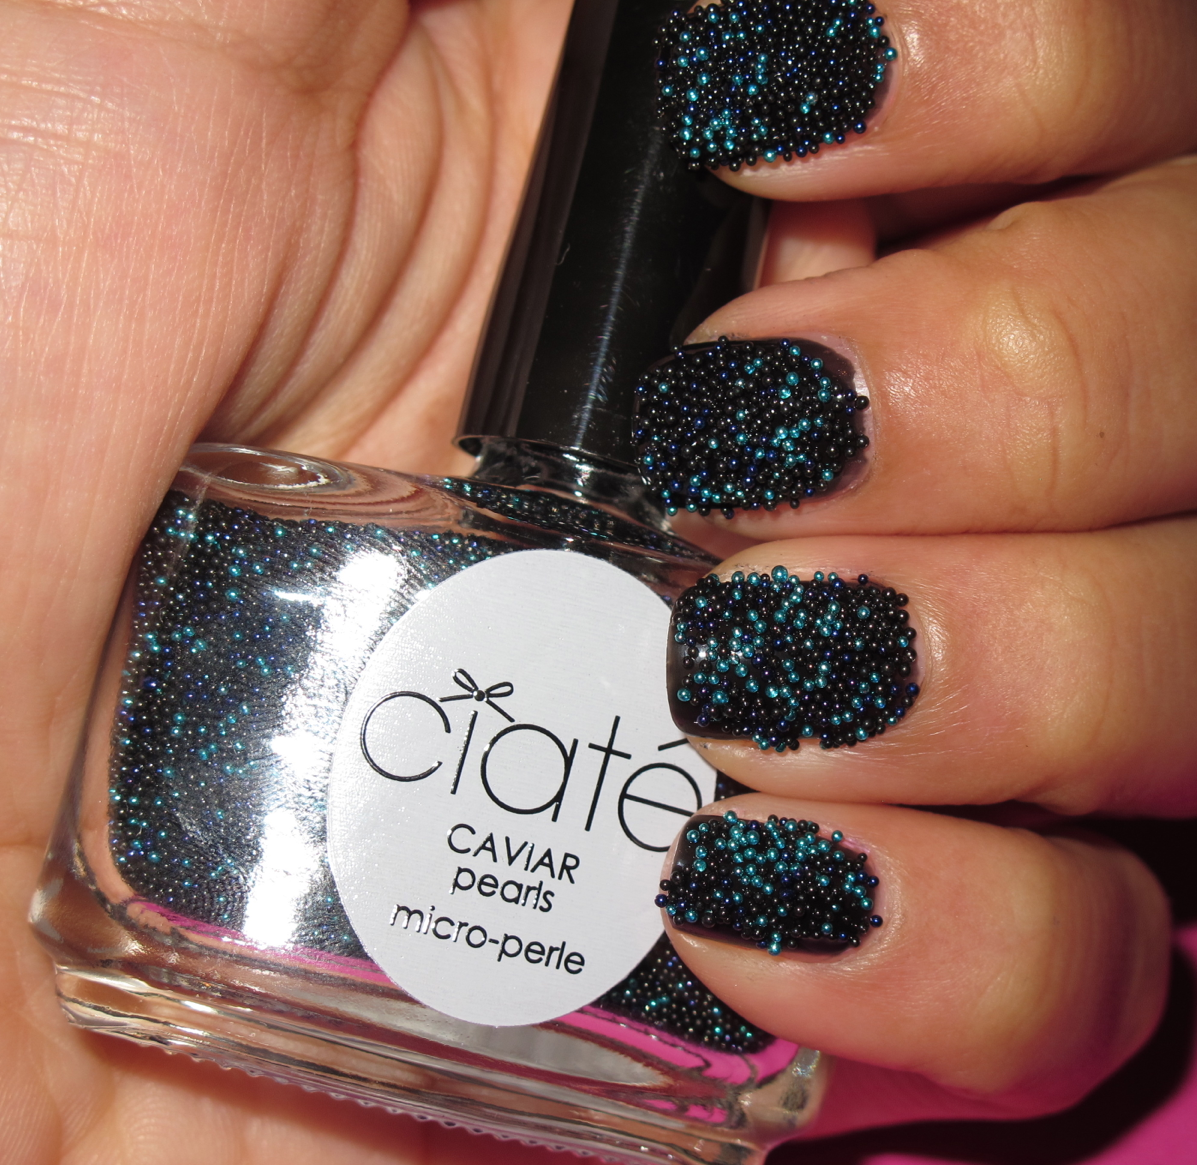 caviar-nails-walktrough